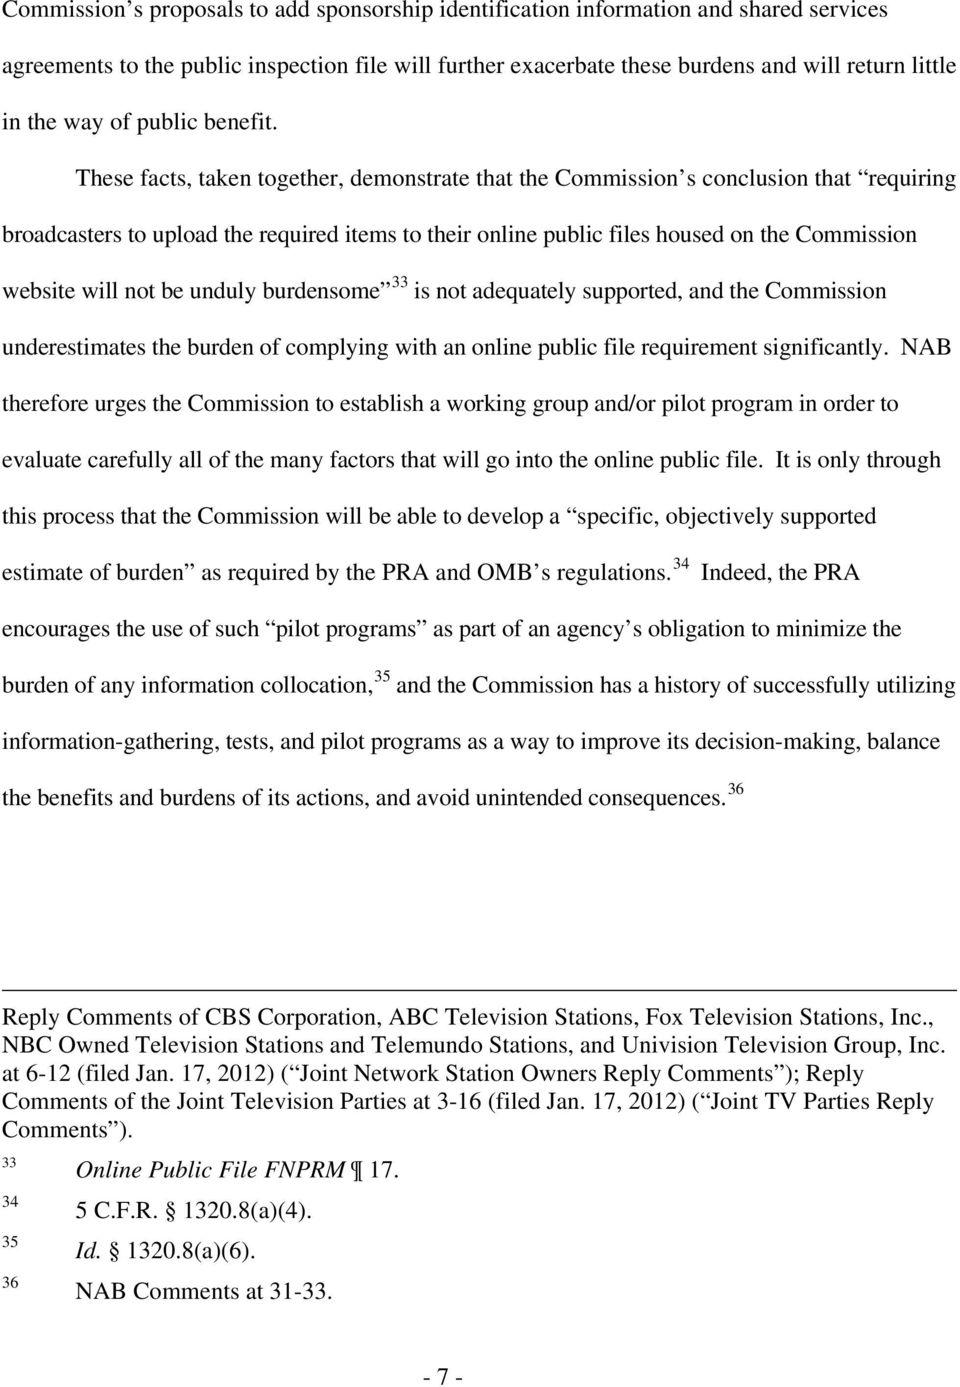 These facts, taken together, demonstrate that the Commission s conclusion that requiring broadcasters to upload the required items to their online public files housed on the Commission website will